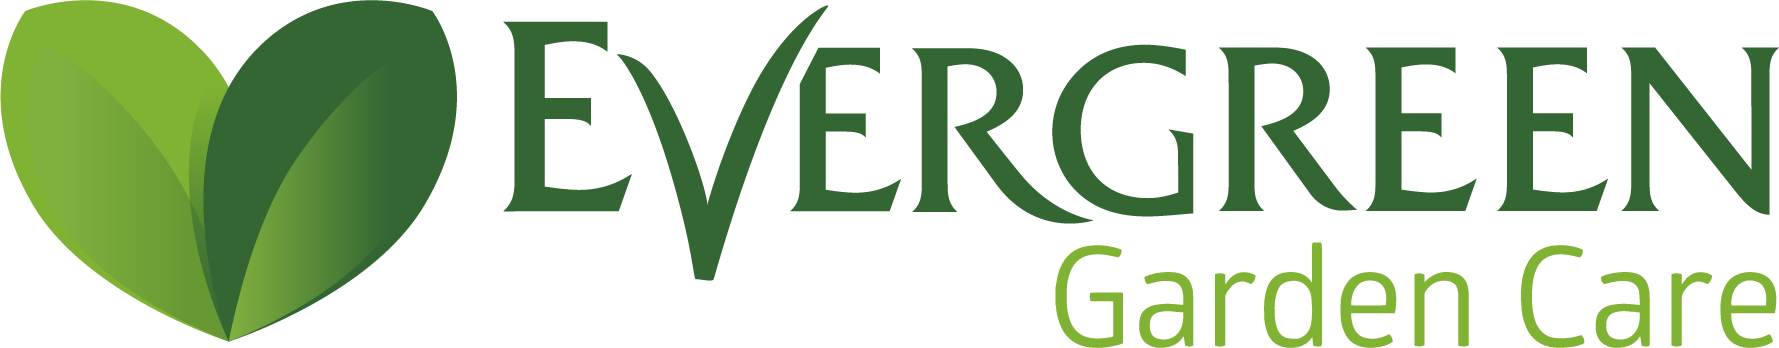 Evergreen Garden Care (UK) Ltd